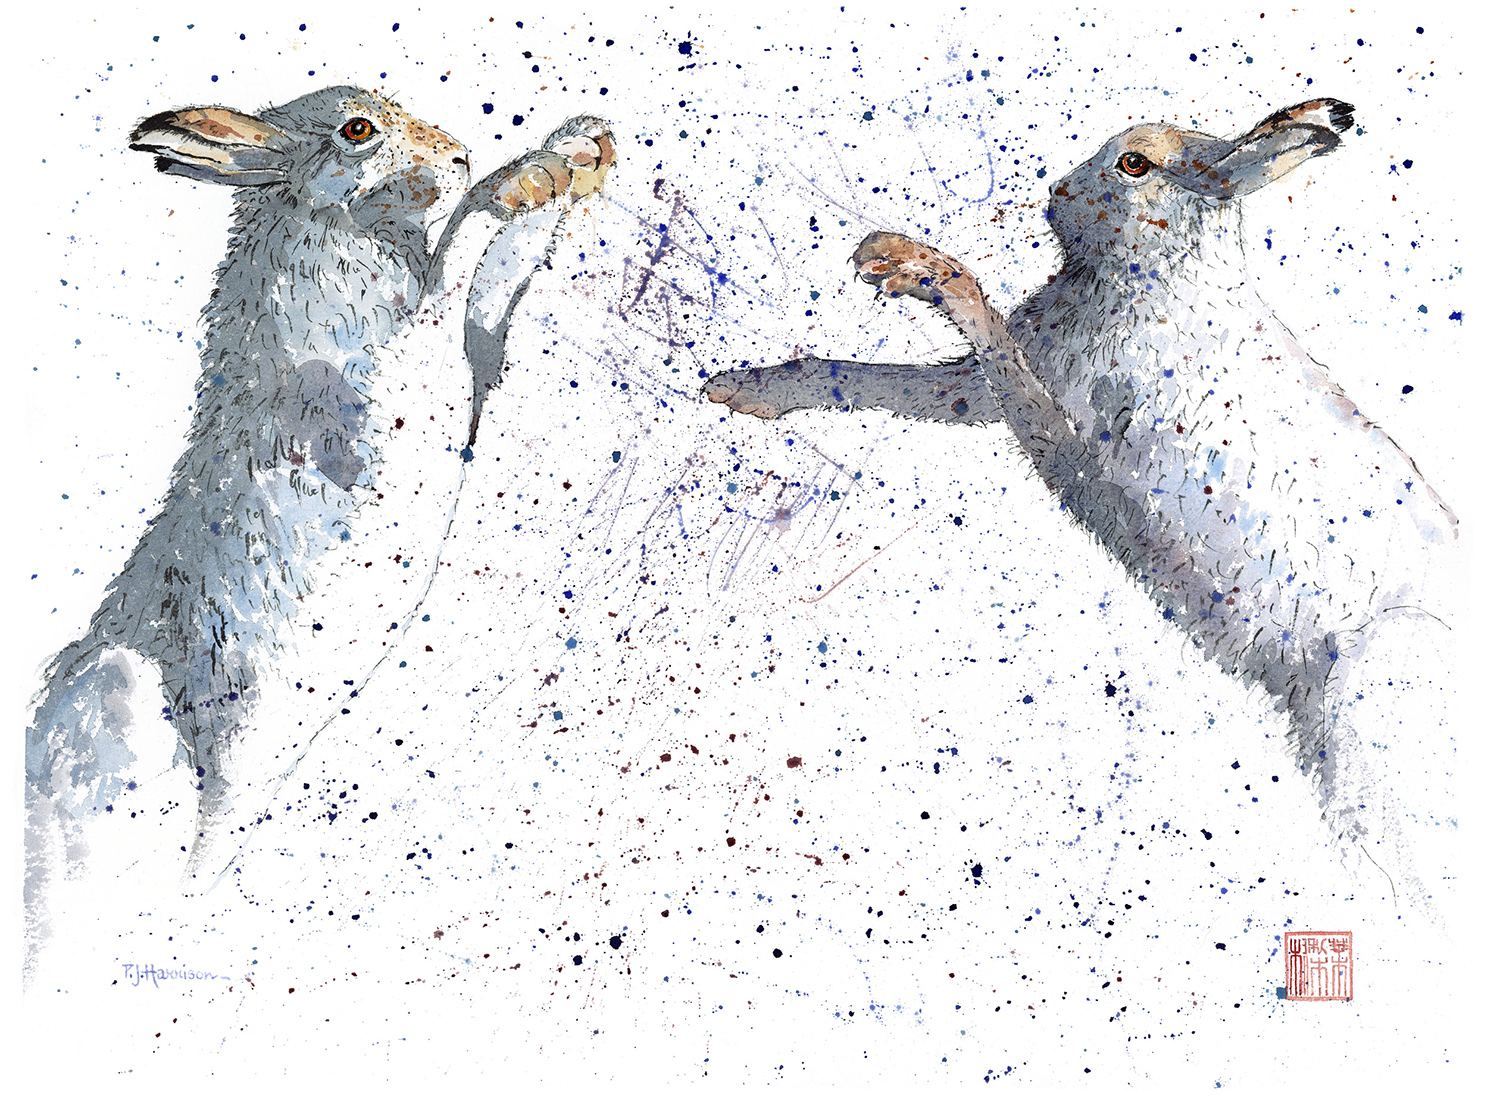 Boxing-Hares-Pink-Harrison-Artist-Broadway-Cotswolds-UK.jpg